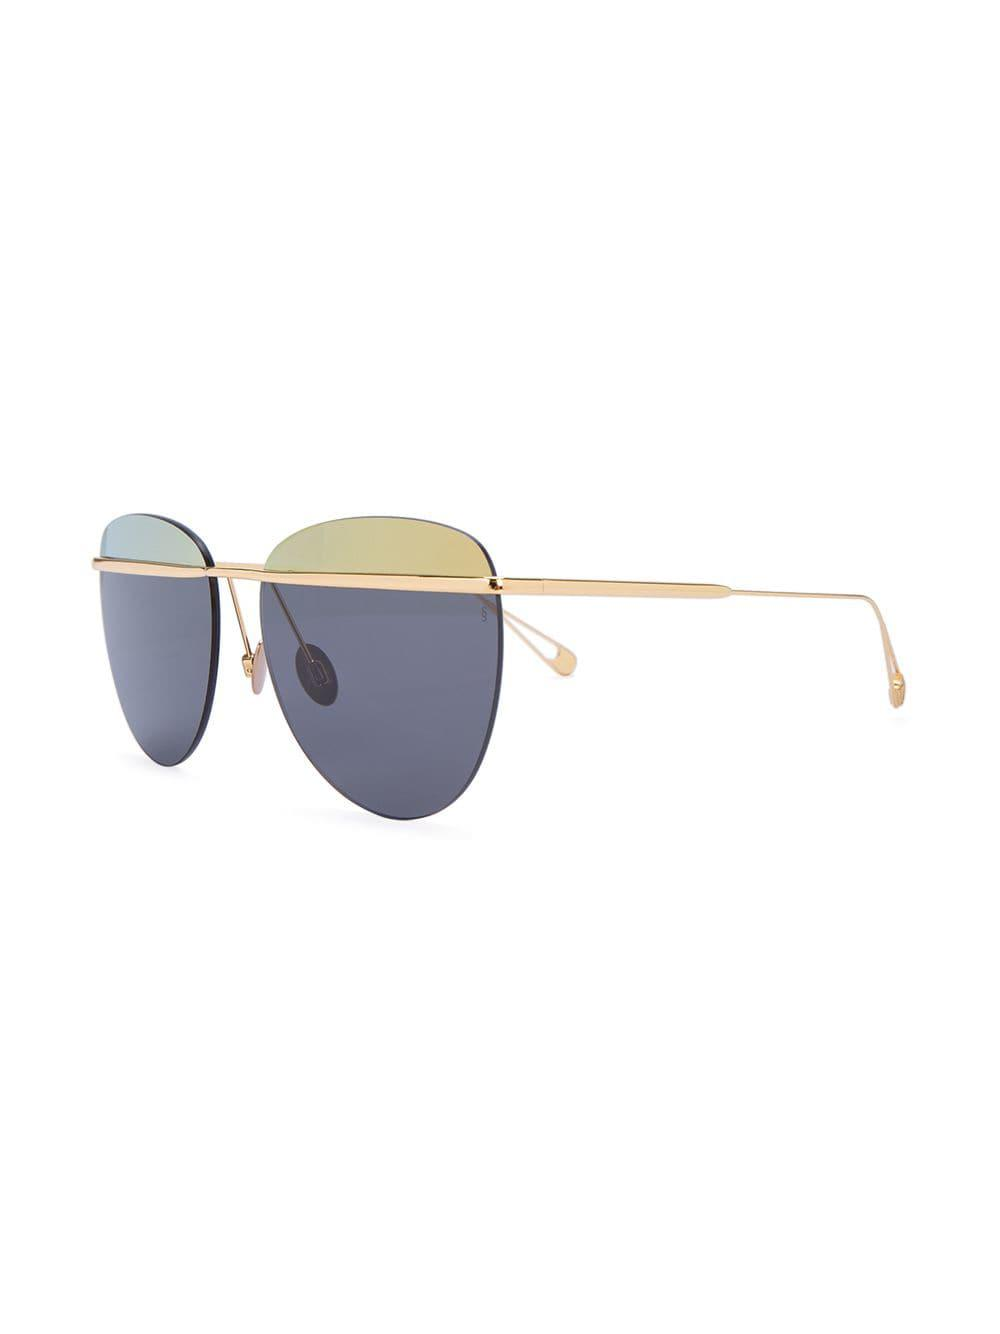 Sunday Somewhere Aviator Sunglasses in Metallic